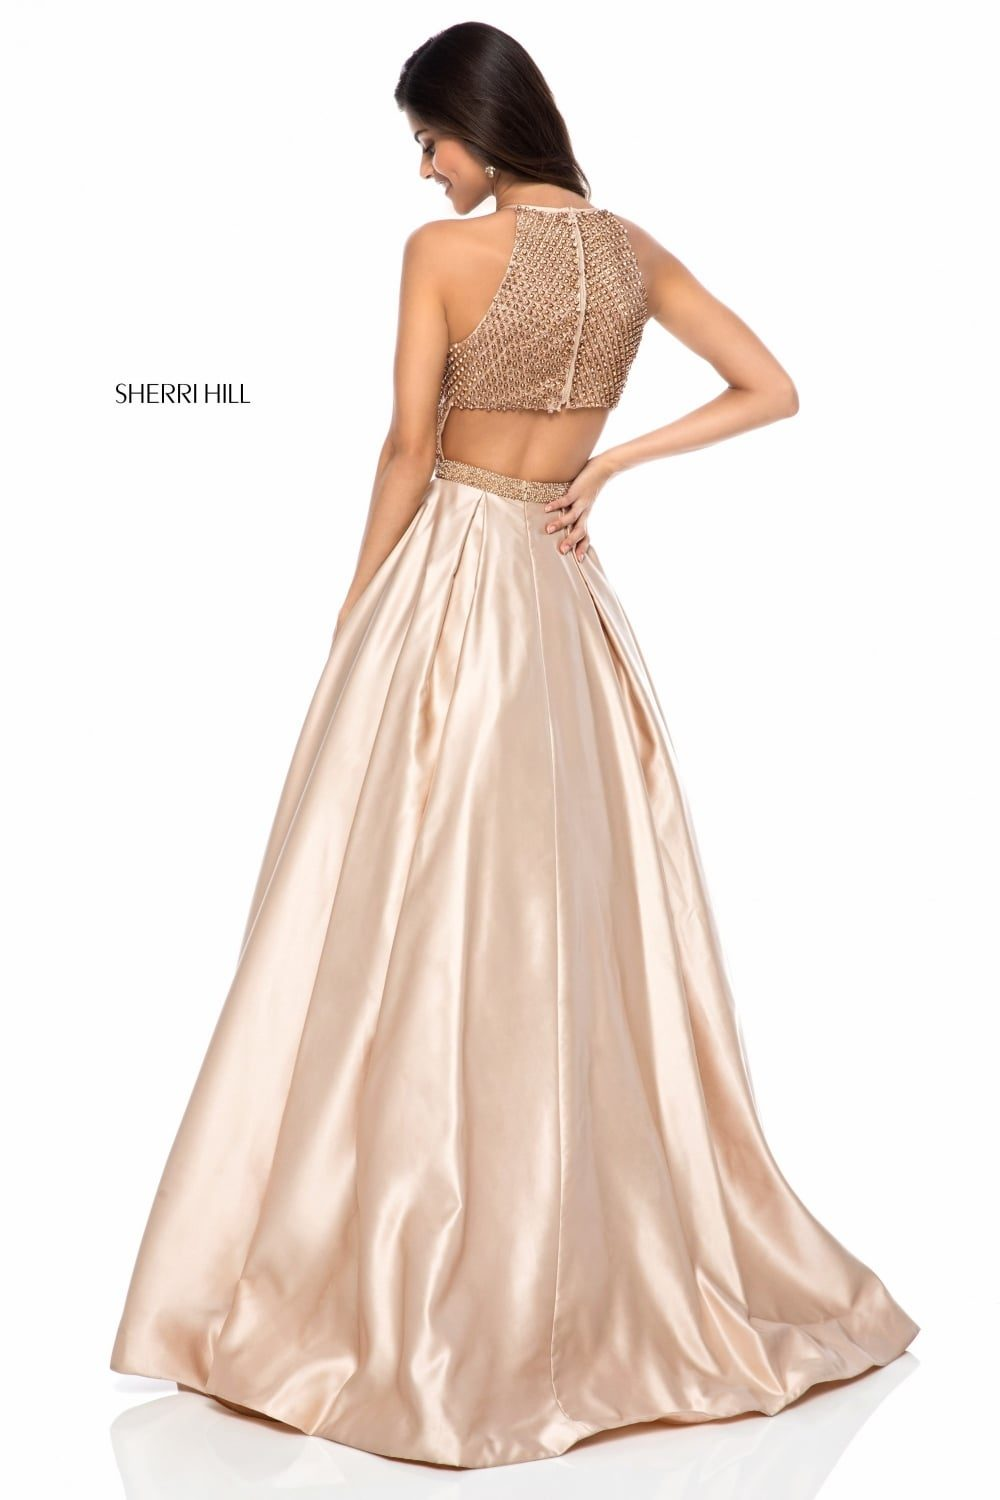 Sherri Hill 52019 Prom Dress